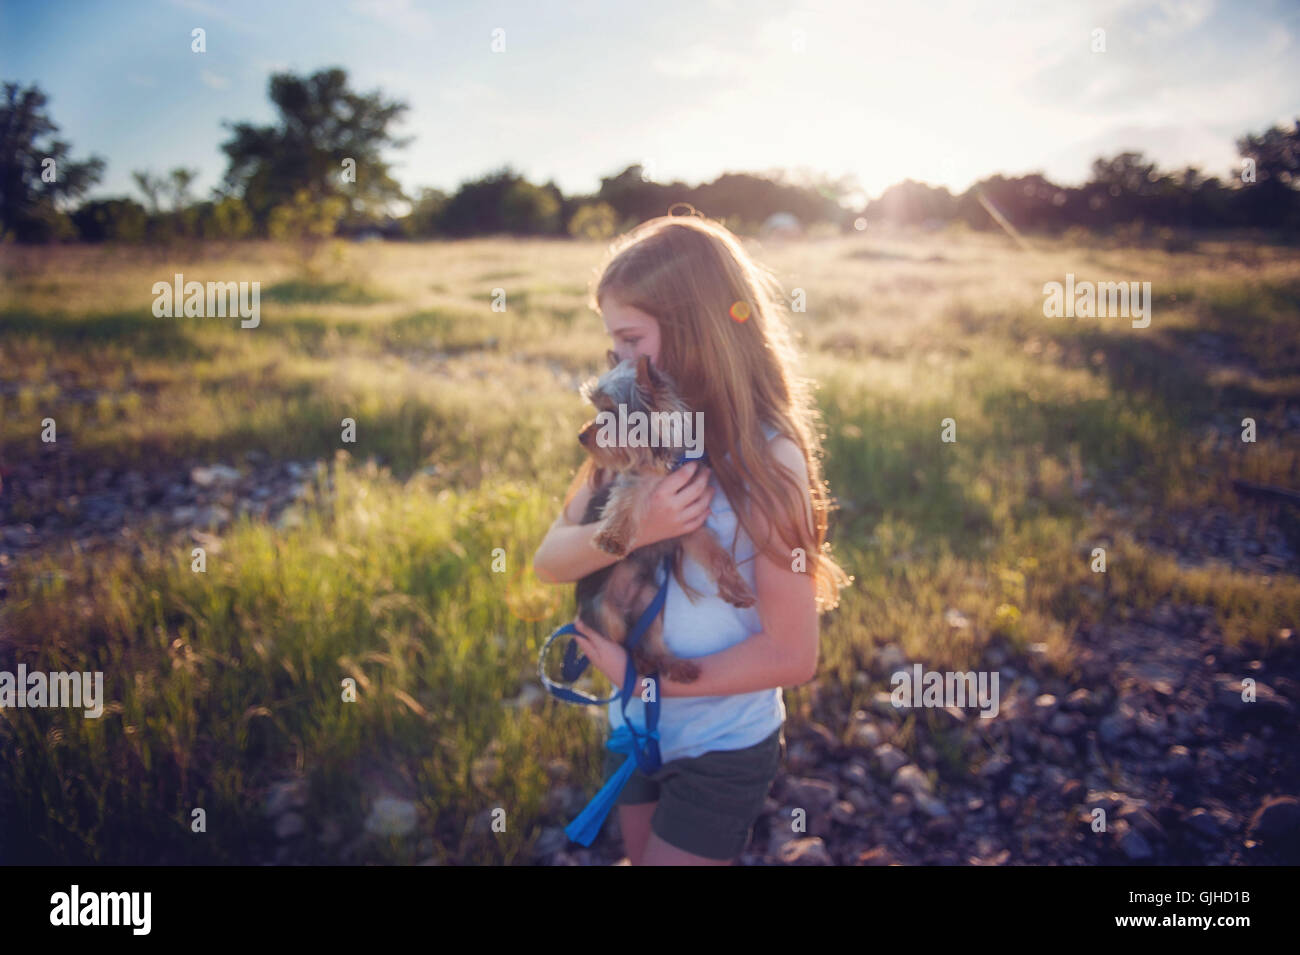 Girl carrying her dog on hike - Stock Image